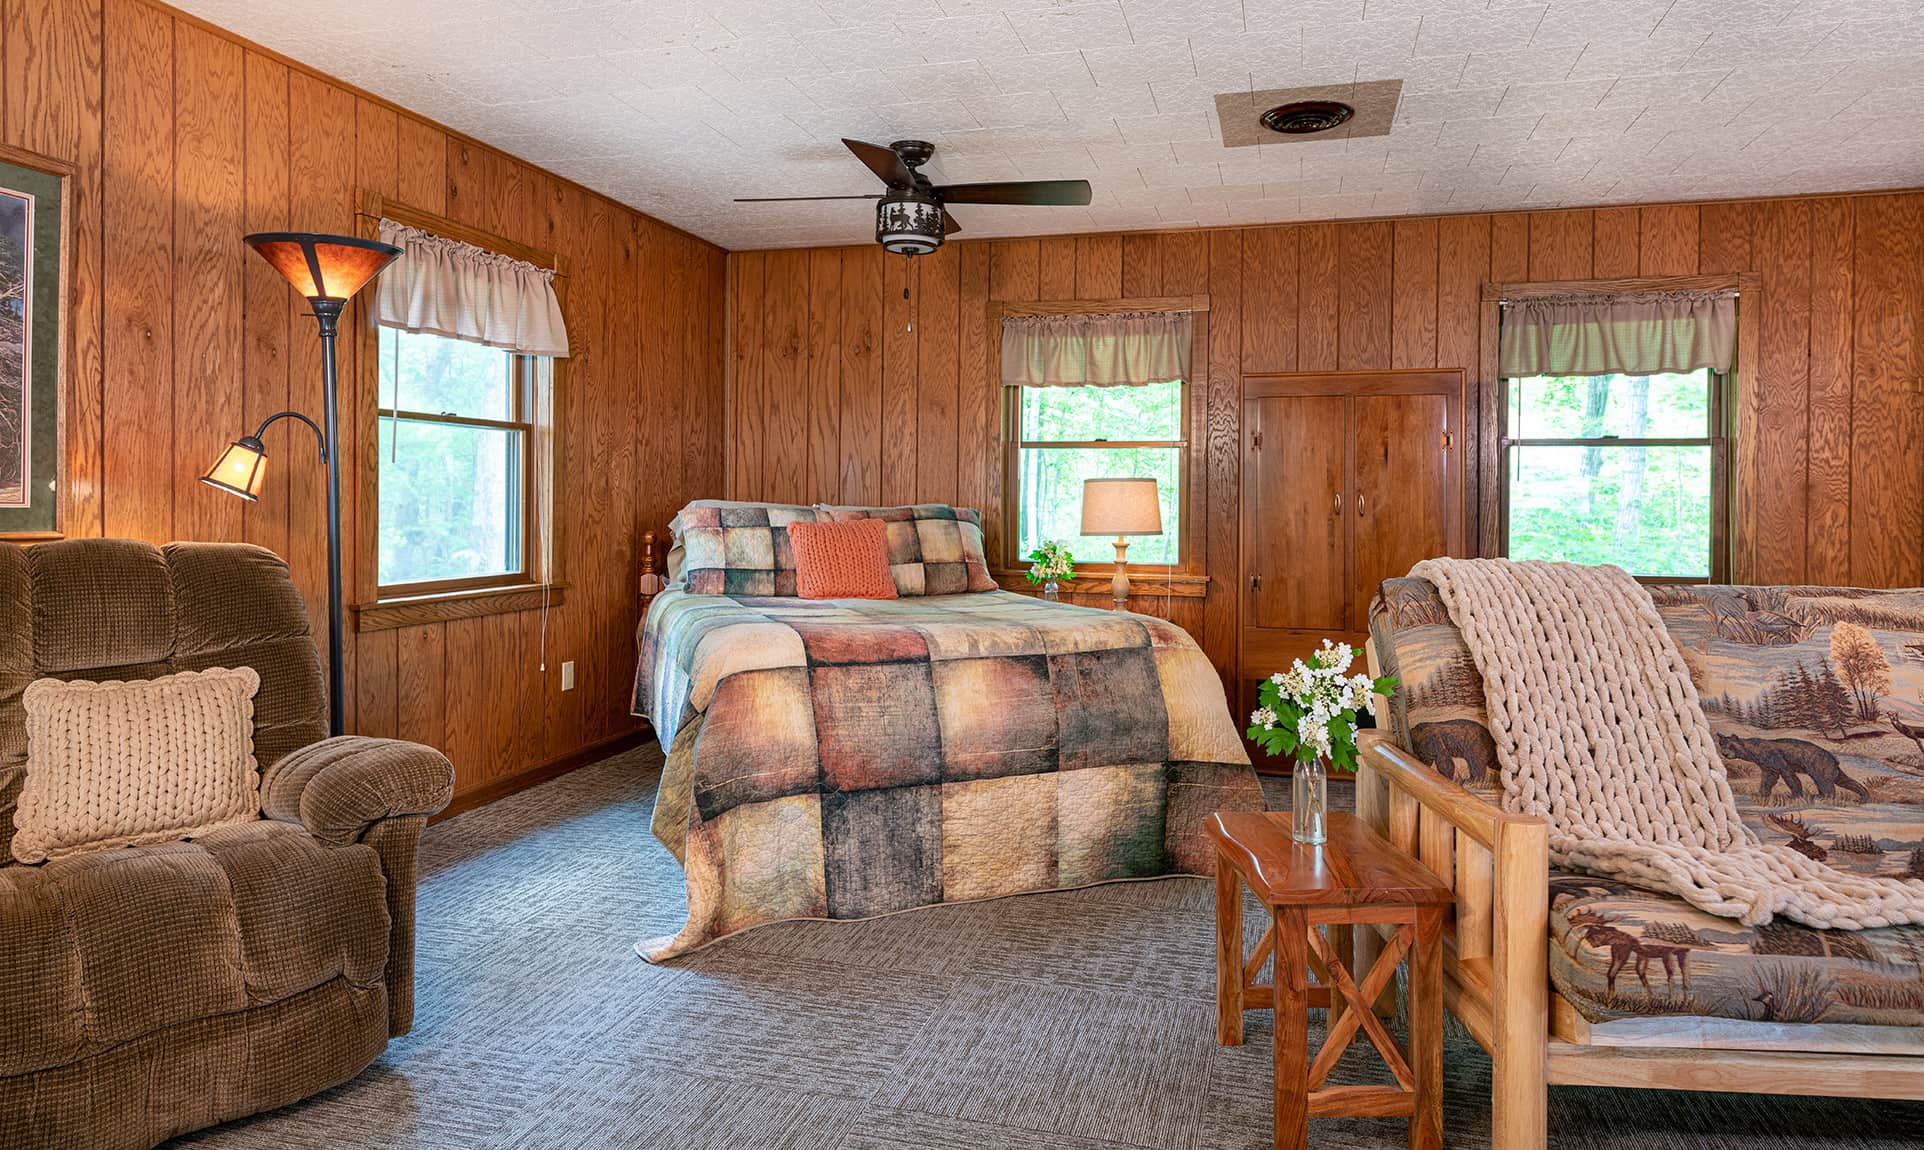 Queen bed in a romantic Illinois cabin near Starved Rock